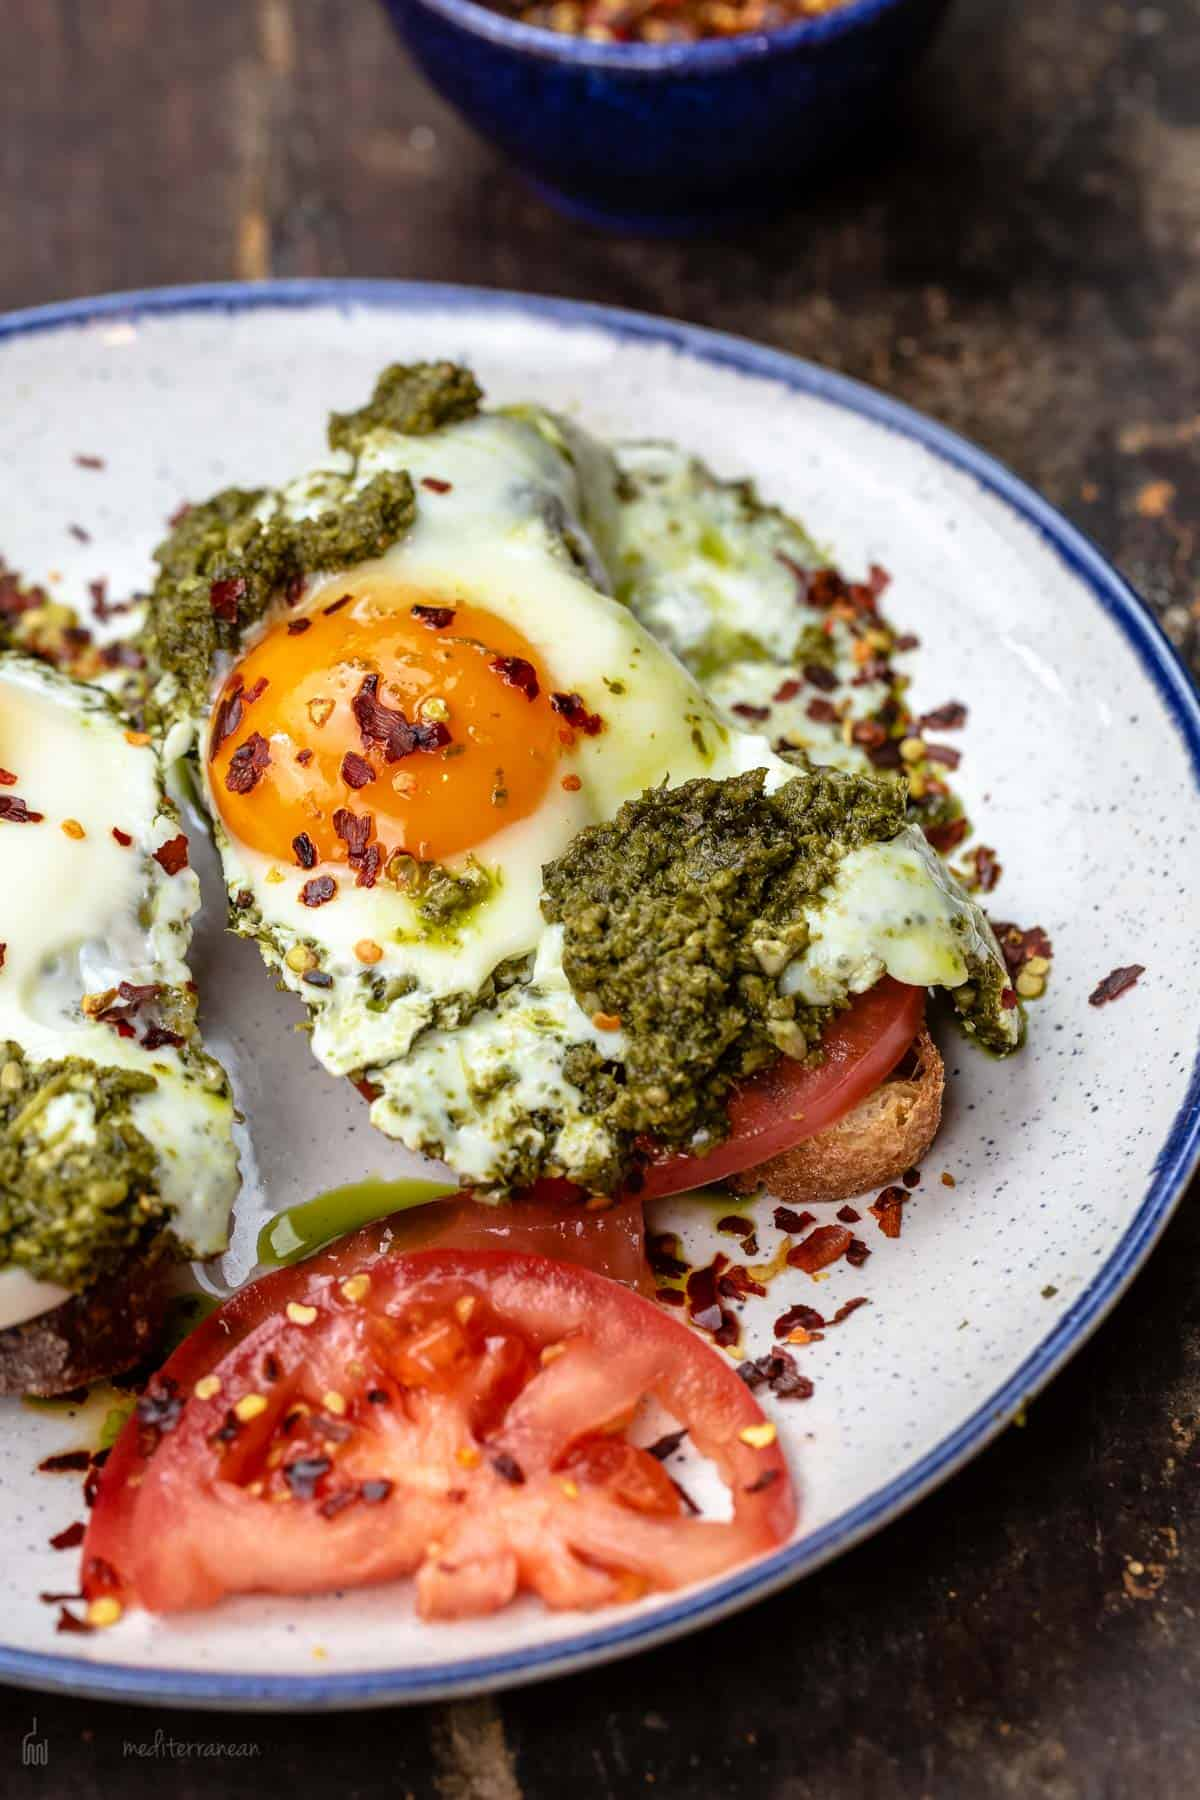 Eggs cooked sunny side with pesto served on a plate